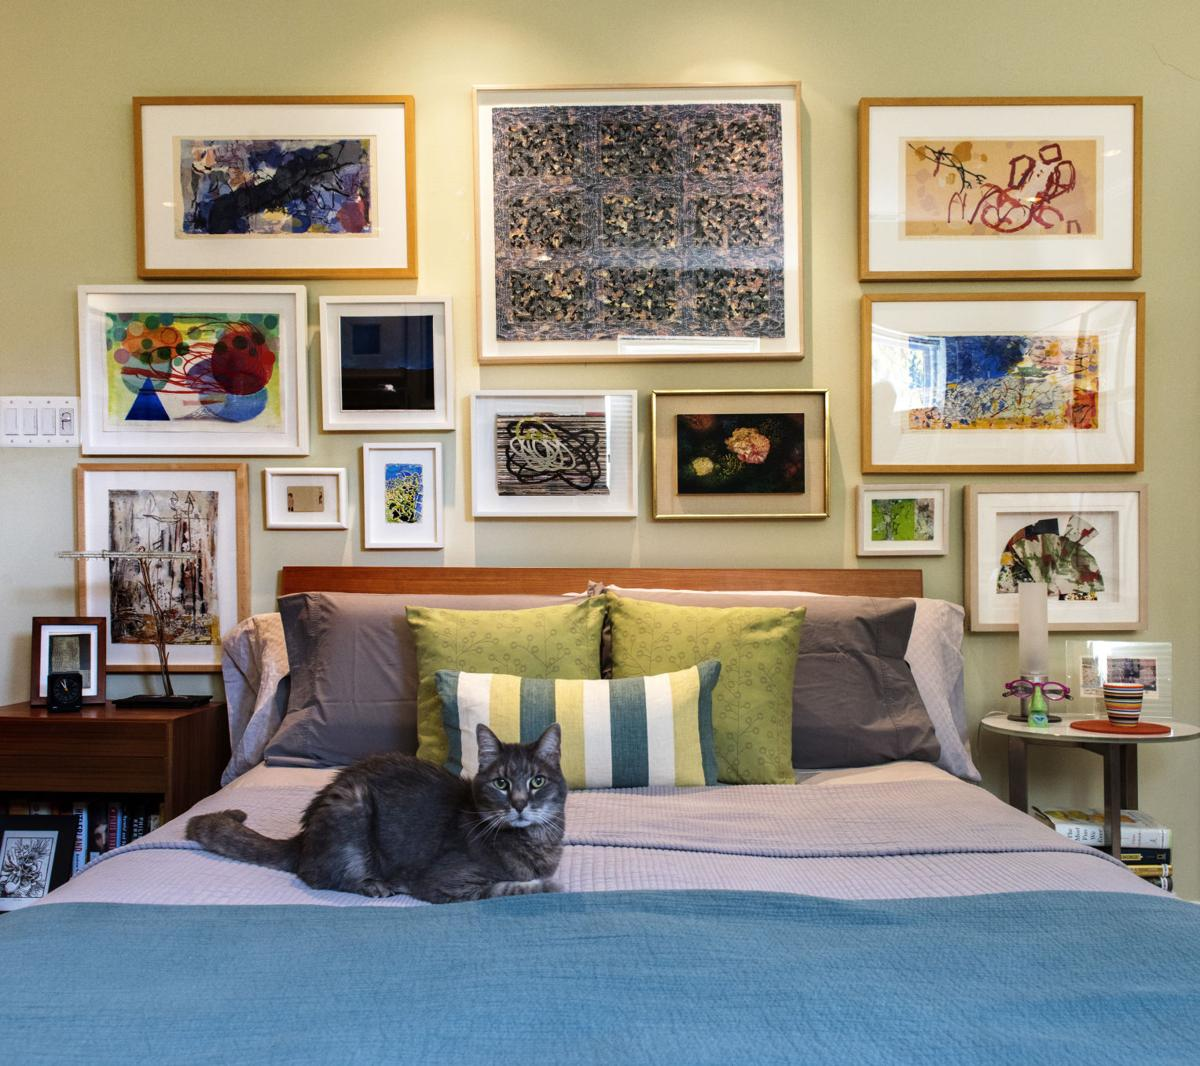 Enhance home values with art